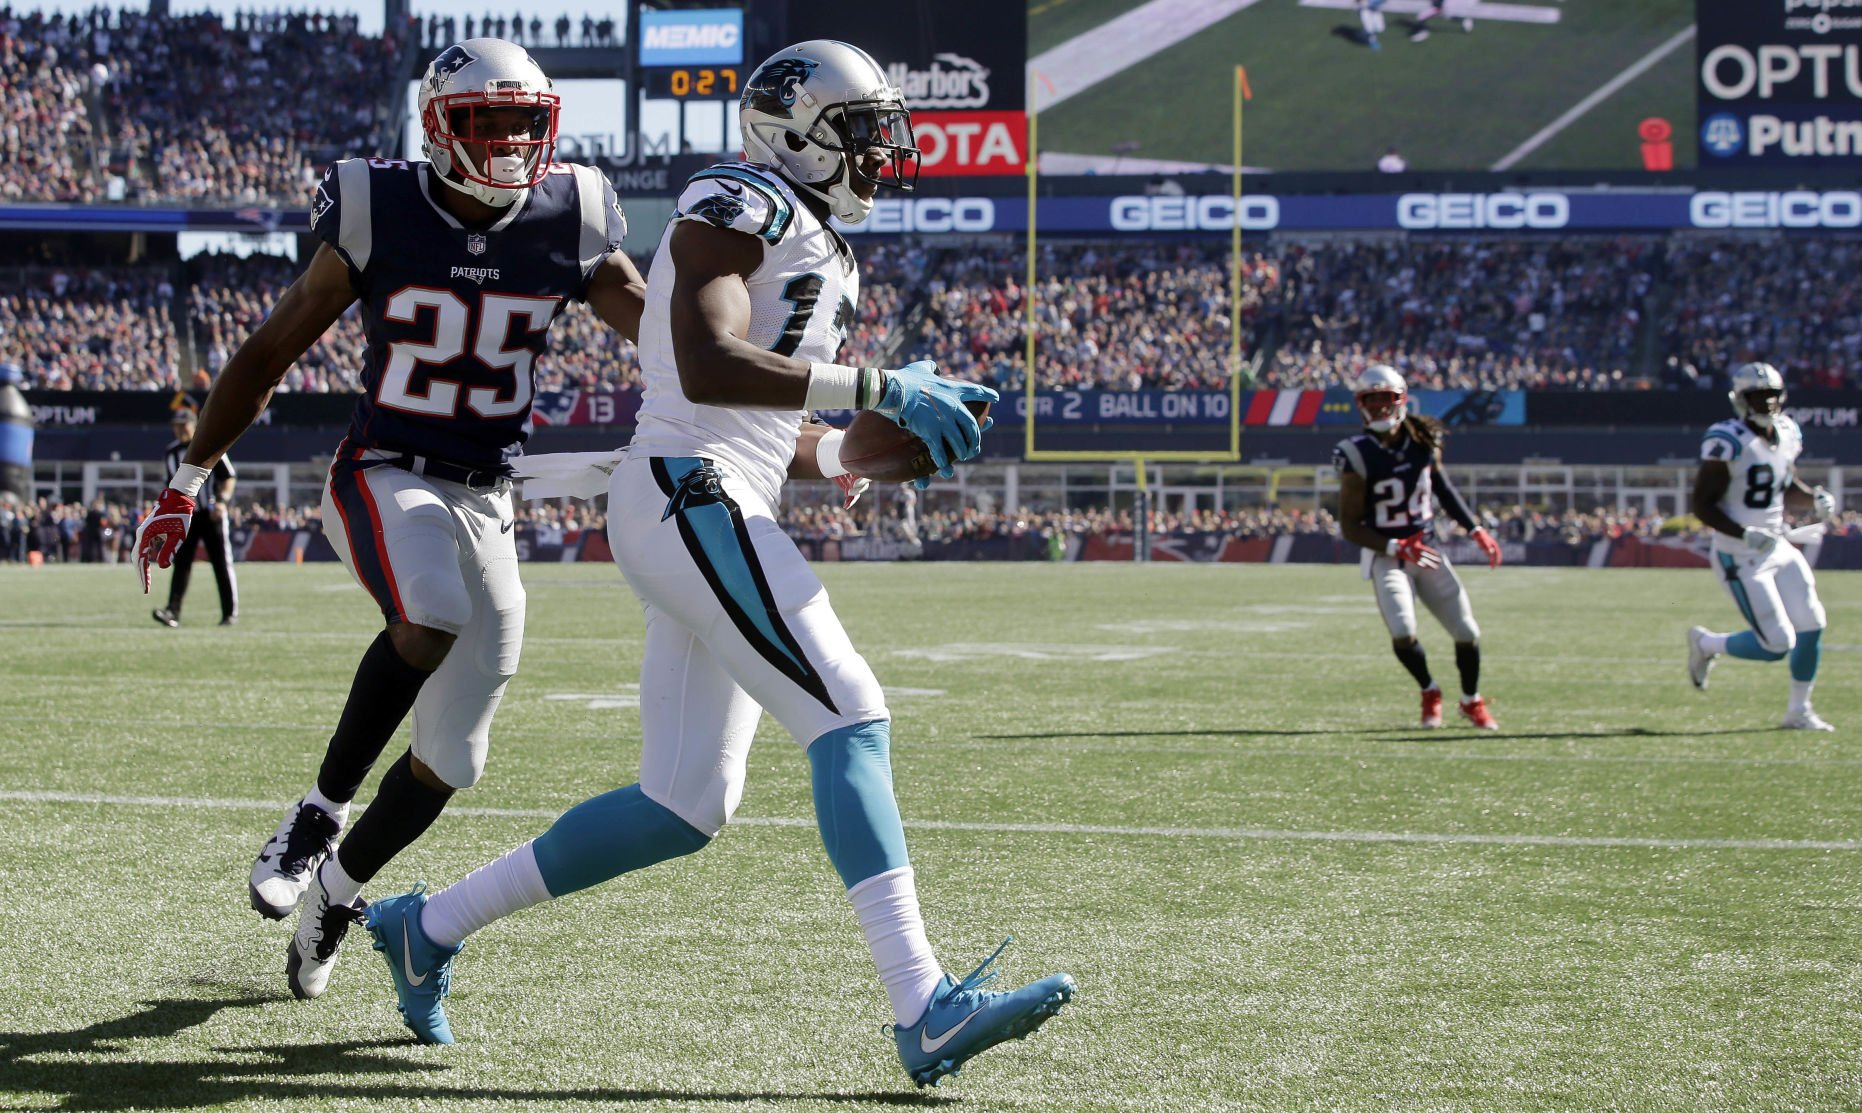 Brandin Cooks downplays past success vs. Panthers